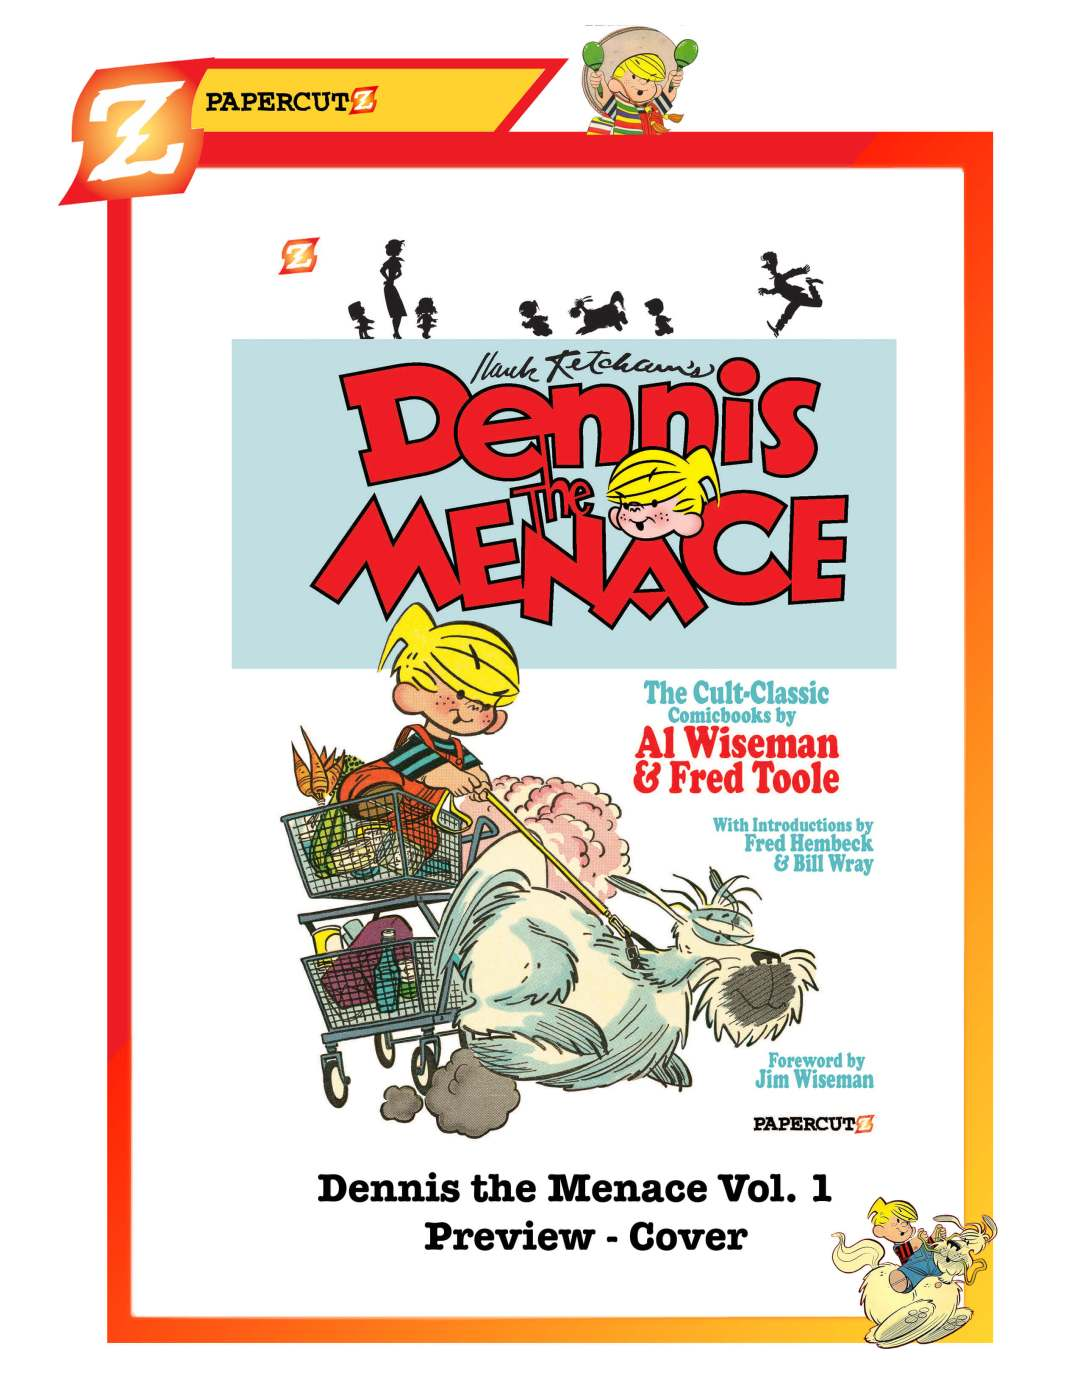 dennis_the_menace_vol1_cover_new_preview